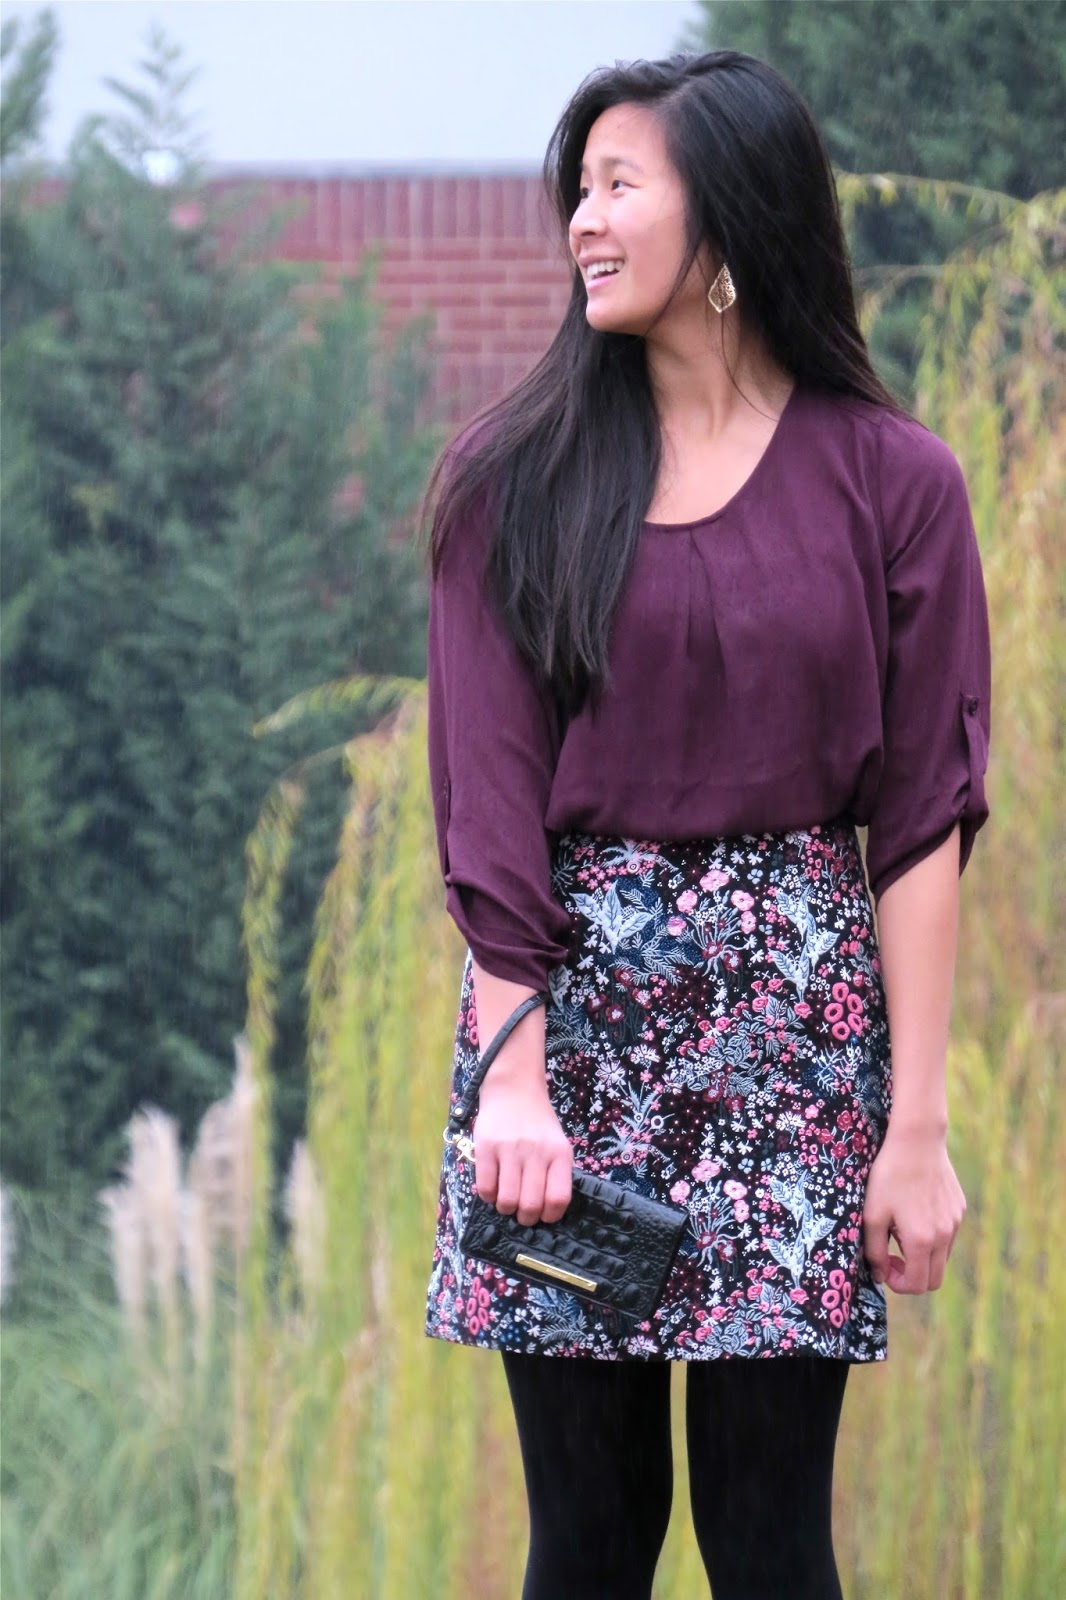 How_to_style_a_floral_skirt